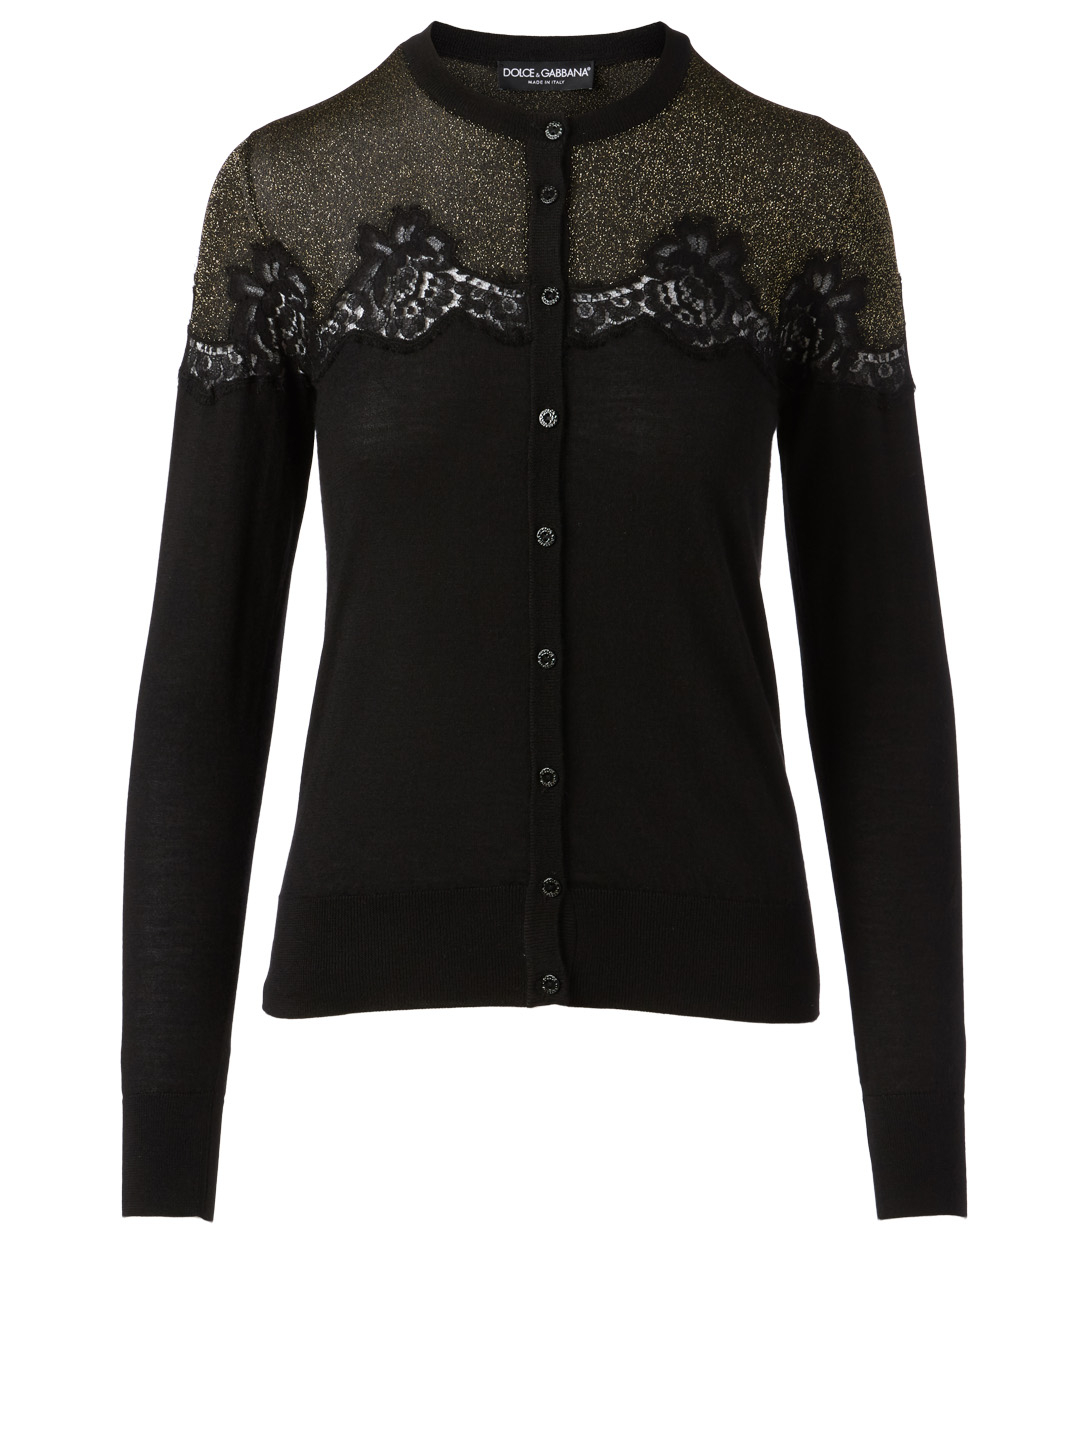 DOLCE & GABBANA Cardigan With Lace Inset Women's Black